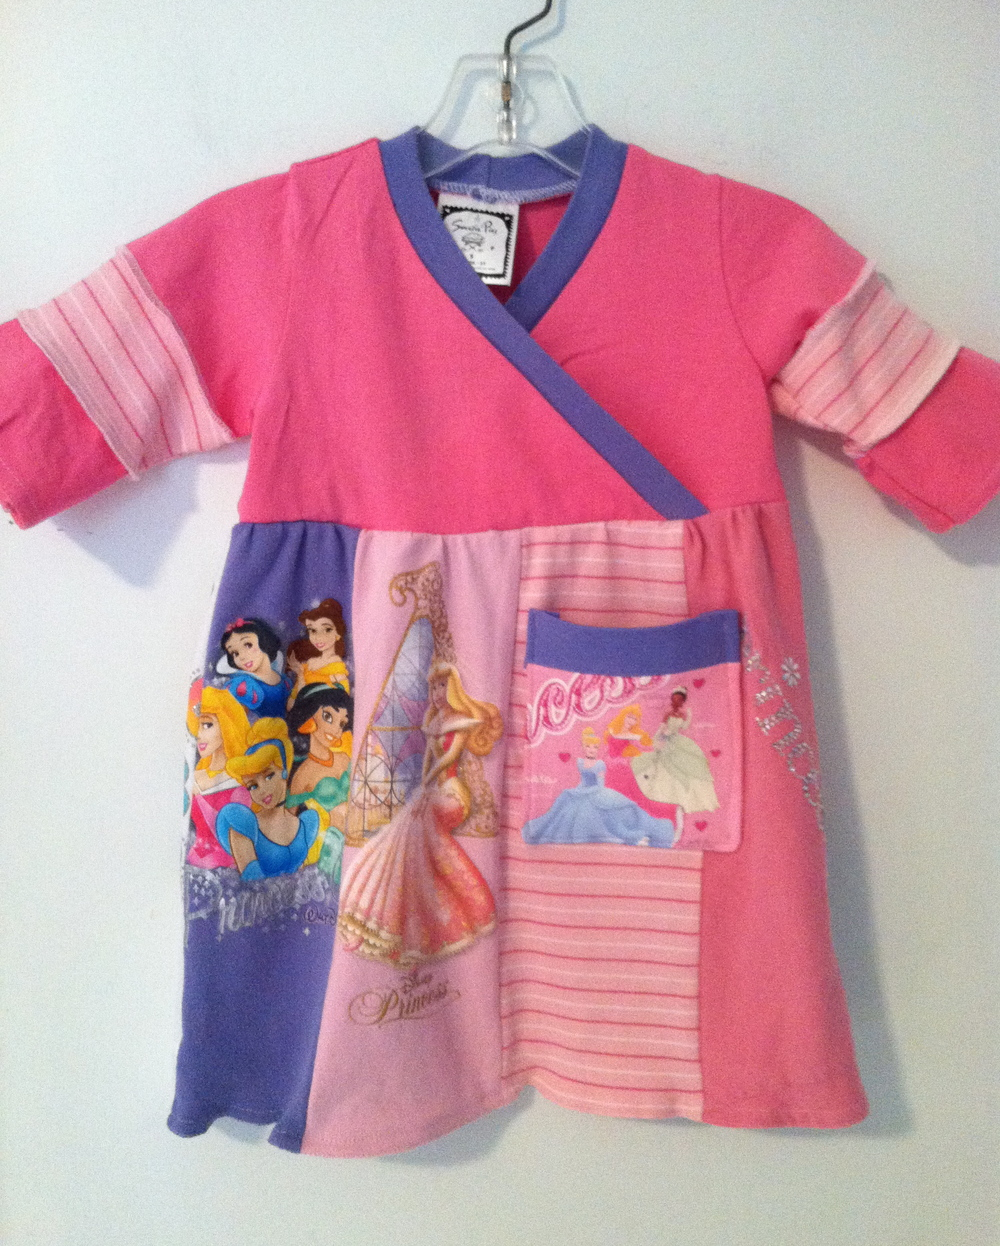 Child's dress, criss cross bodice, sizes xs 6-12mo,  s 18mo-2T, m 2-4, L 4-6, xl 8-10 $40